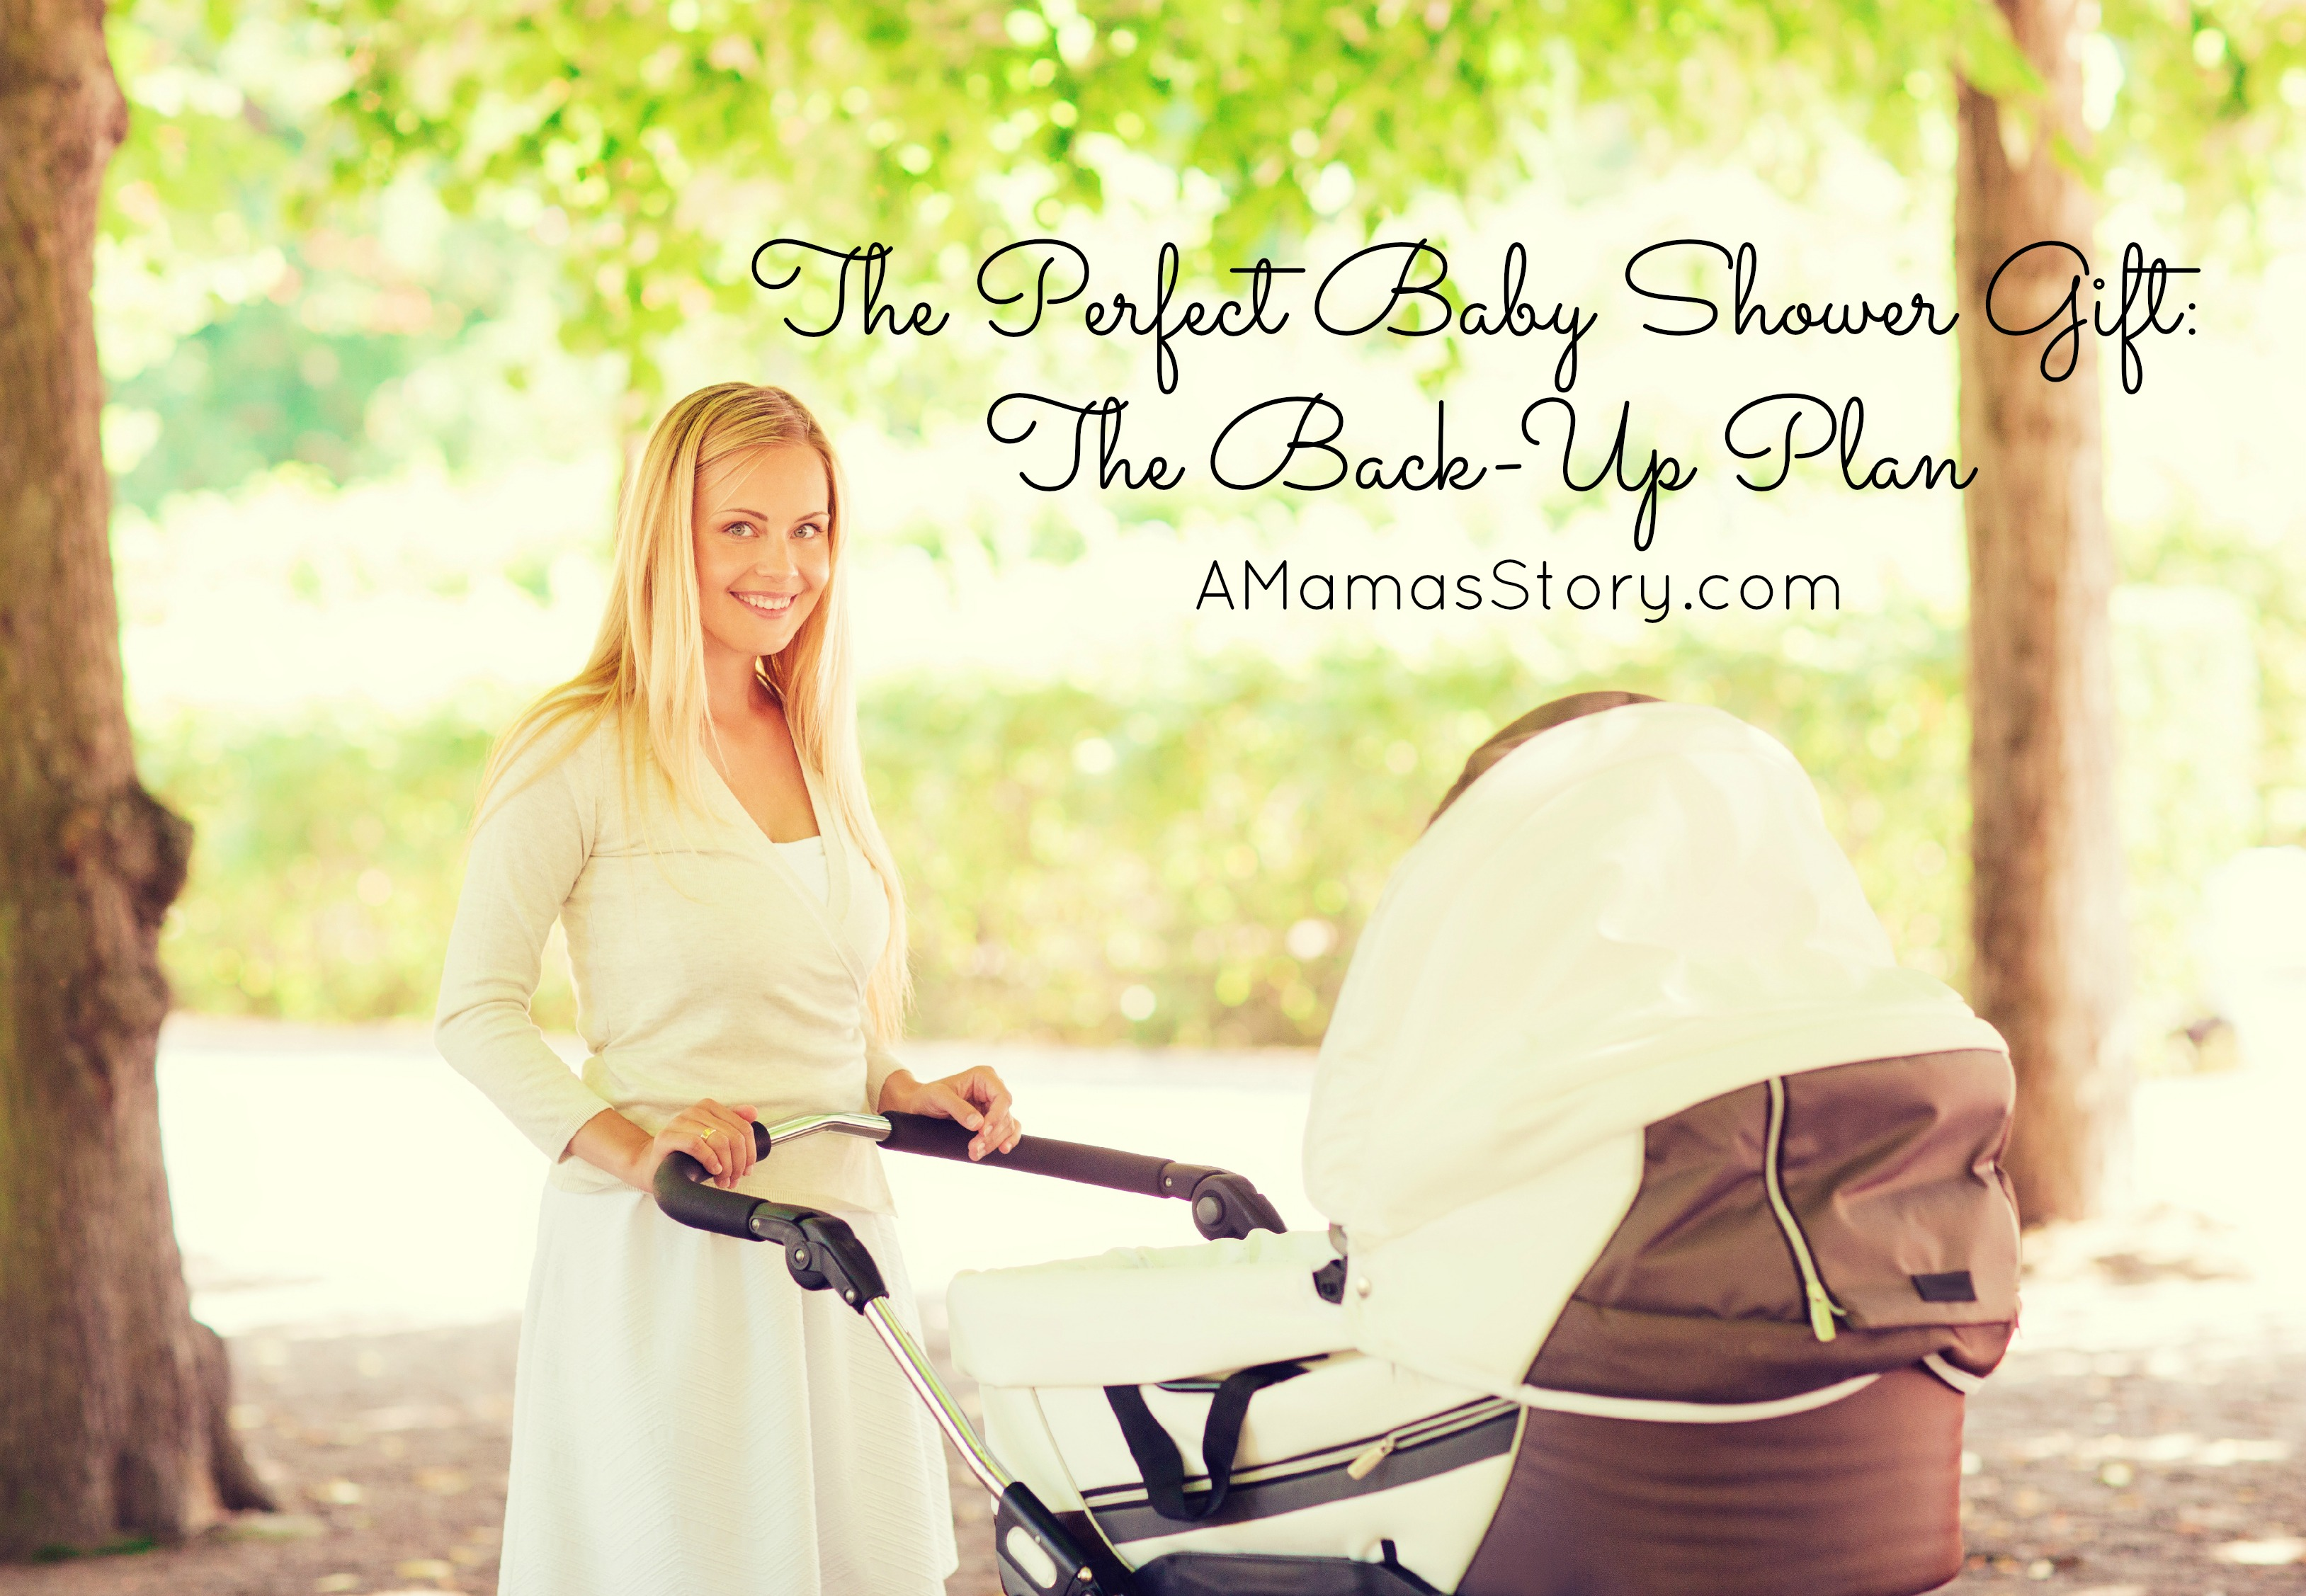 The Perfect Baby Shower Gift: The Back-Up Plan